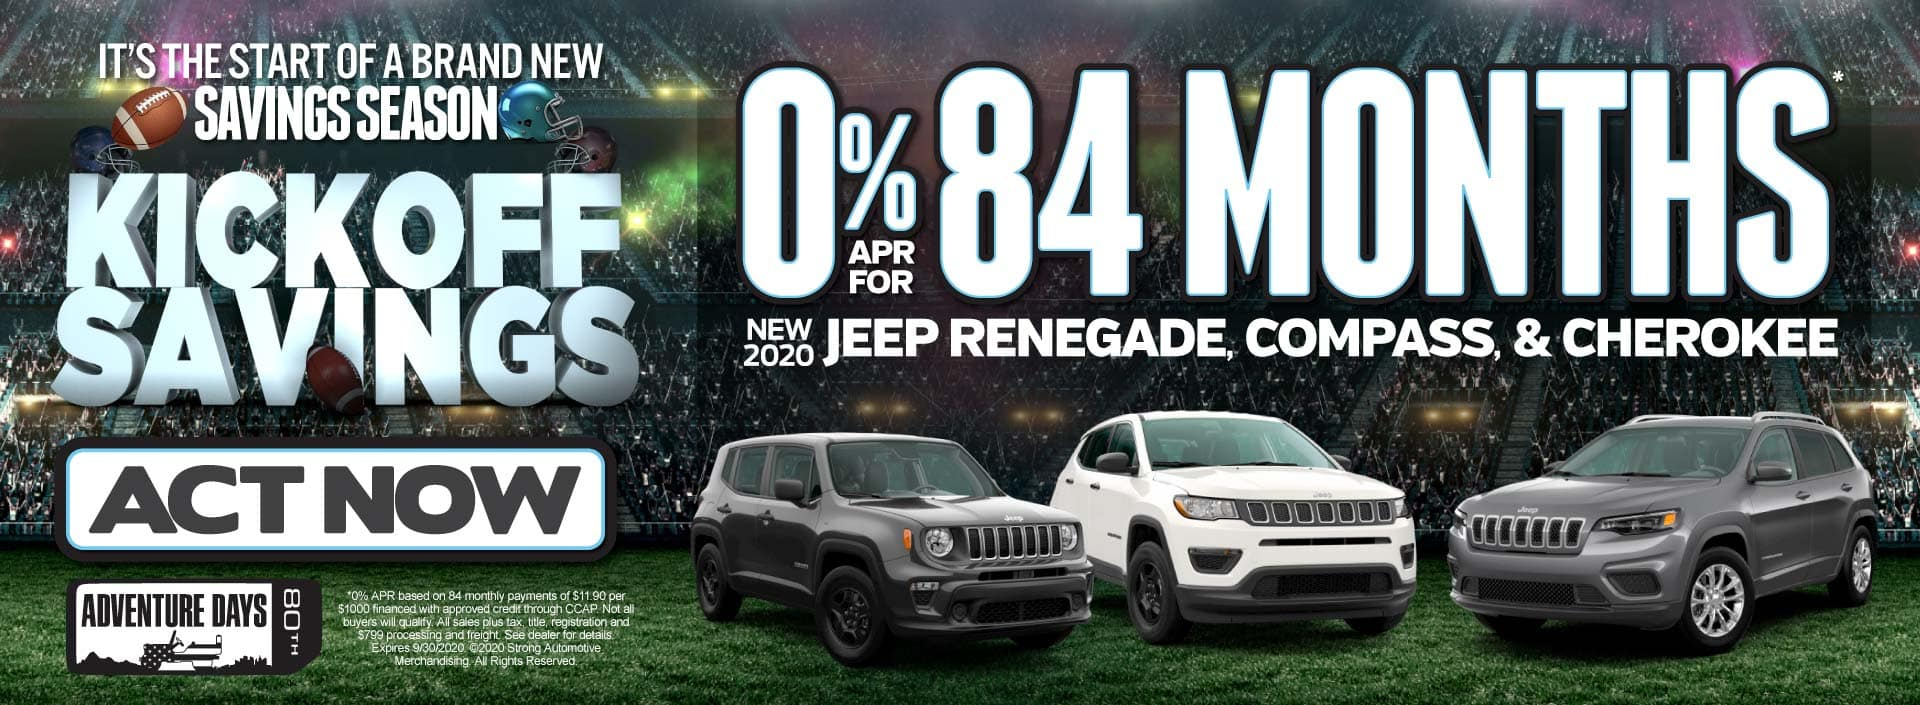 0% APR for 84 months on New 2020 Jeep Renegade, Compass and Cherokee - ACT NOW